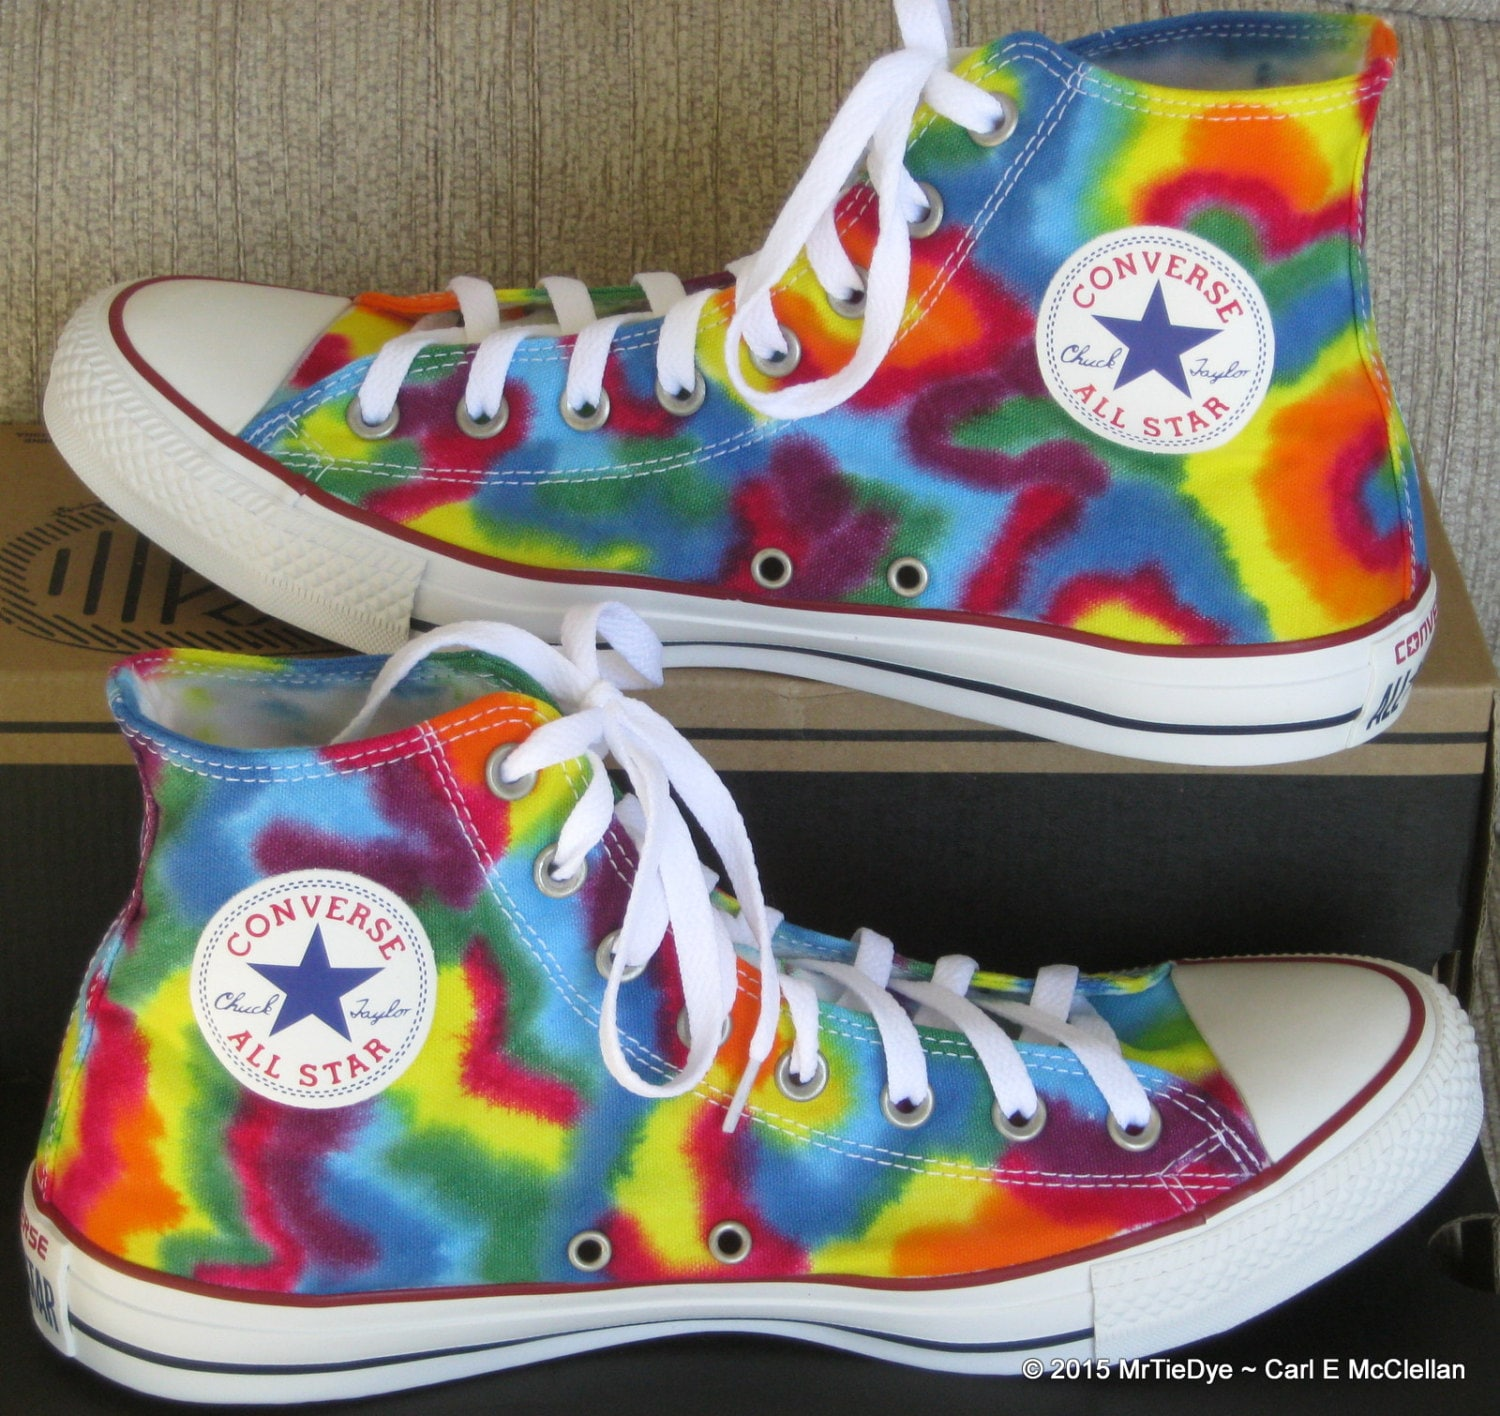 Converse Tye Dye High Tops